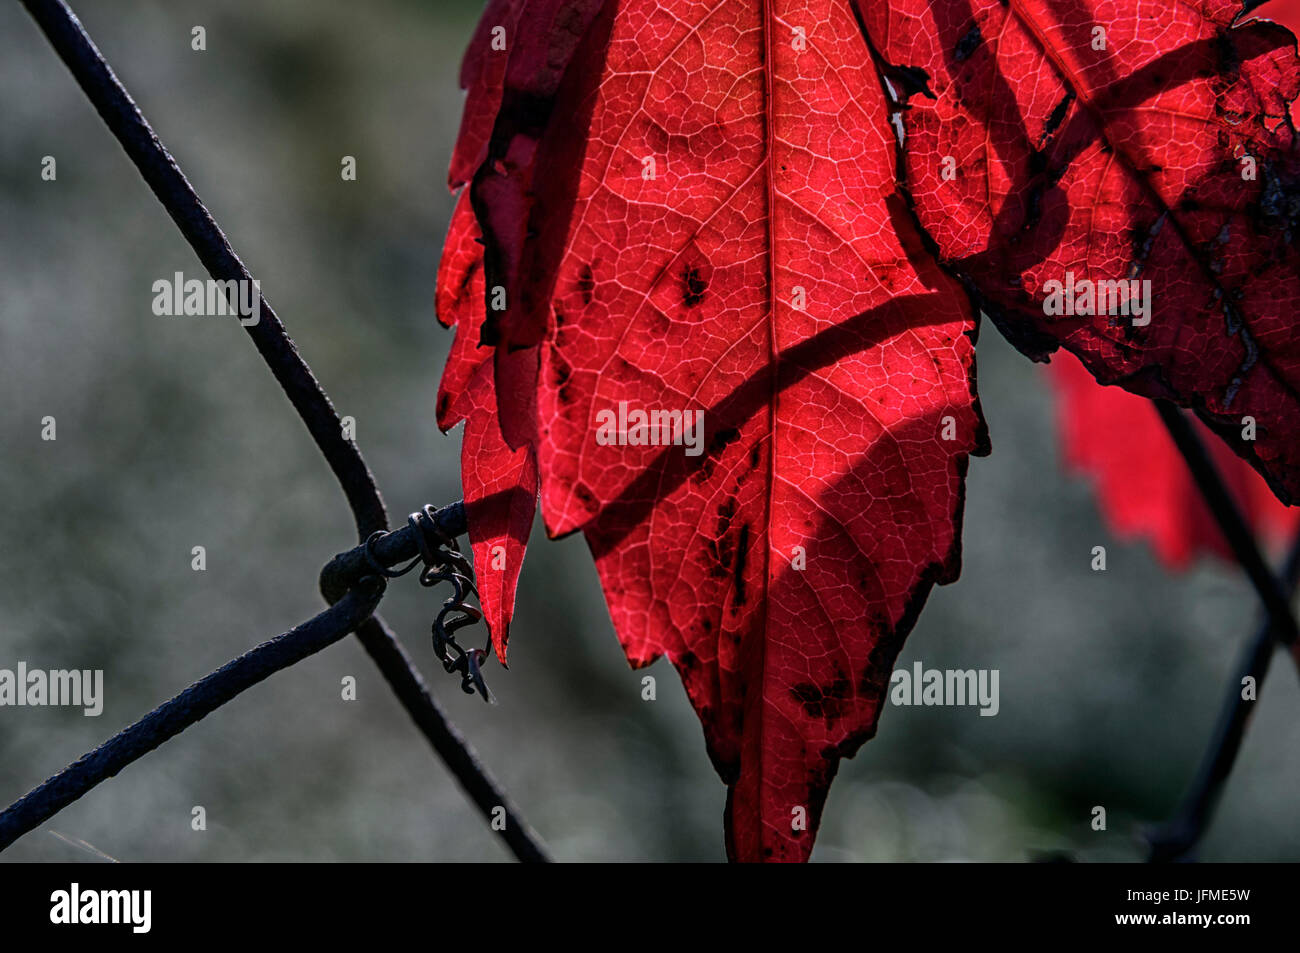 Red Mesh Fence Stockfotos & Red Mesh Fence Bilder - Alamy